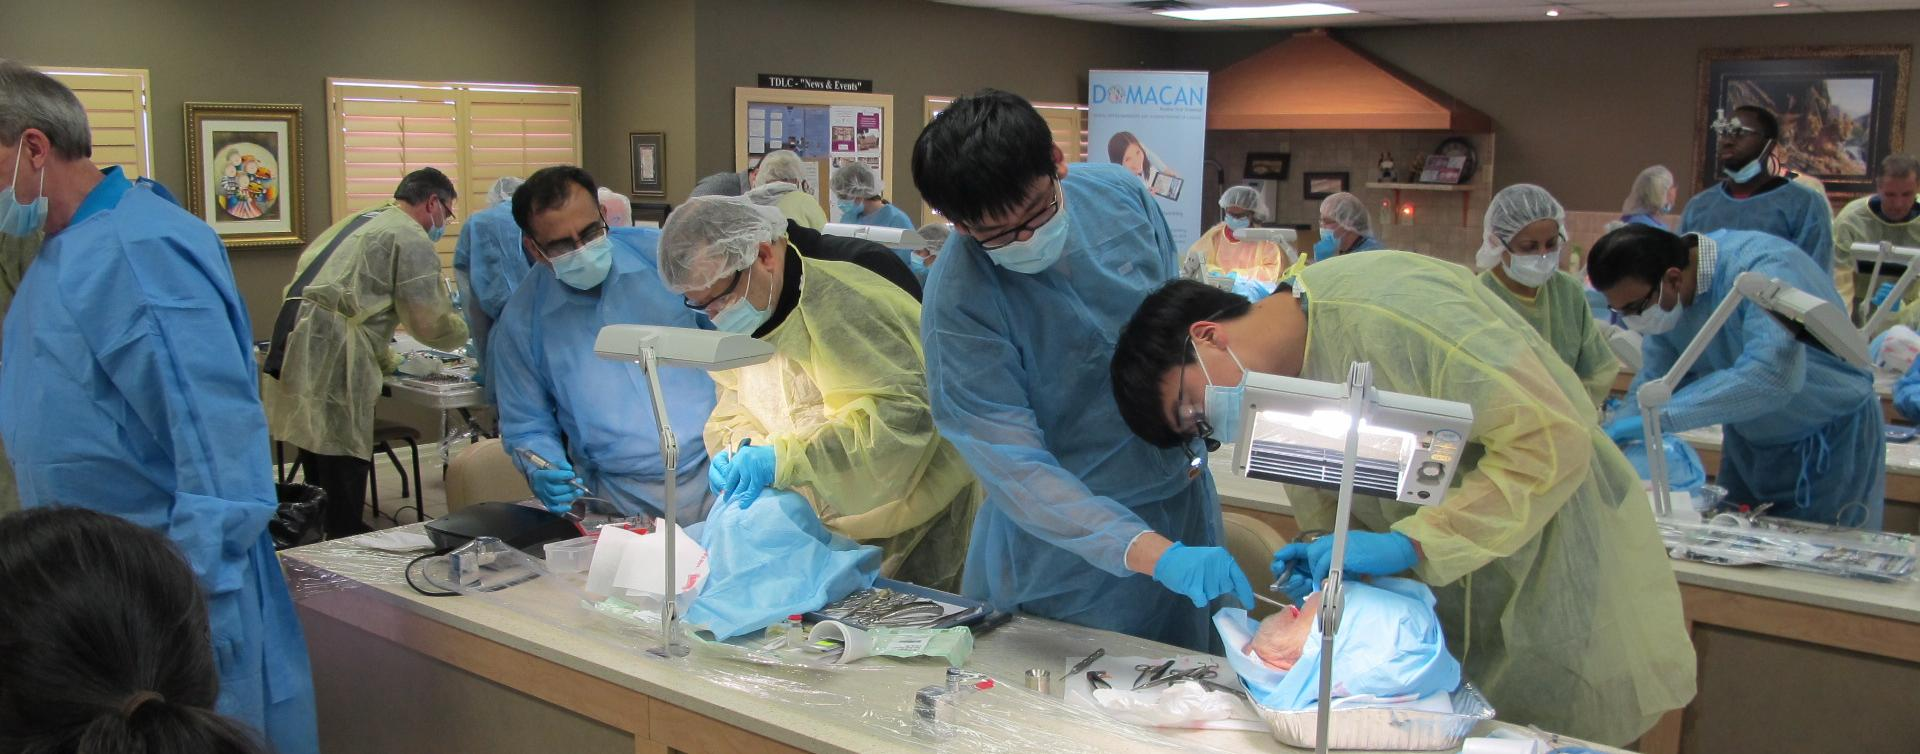 Ti-MAX Bone Grafting & Hands-On Cadaver Weekend